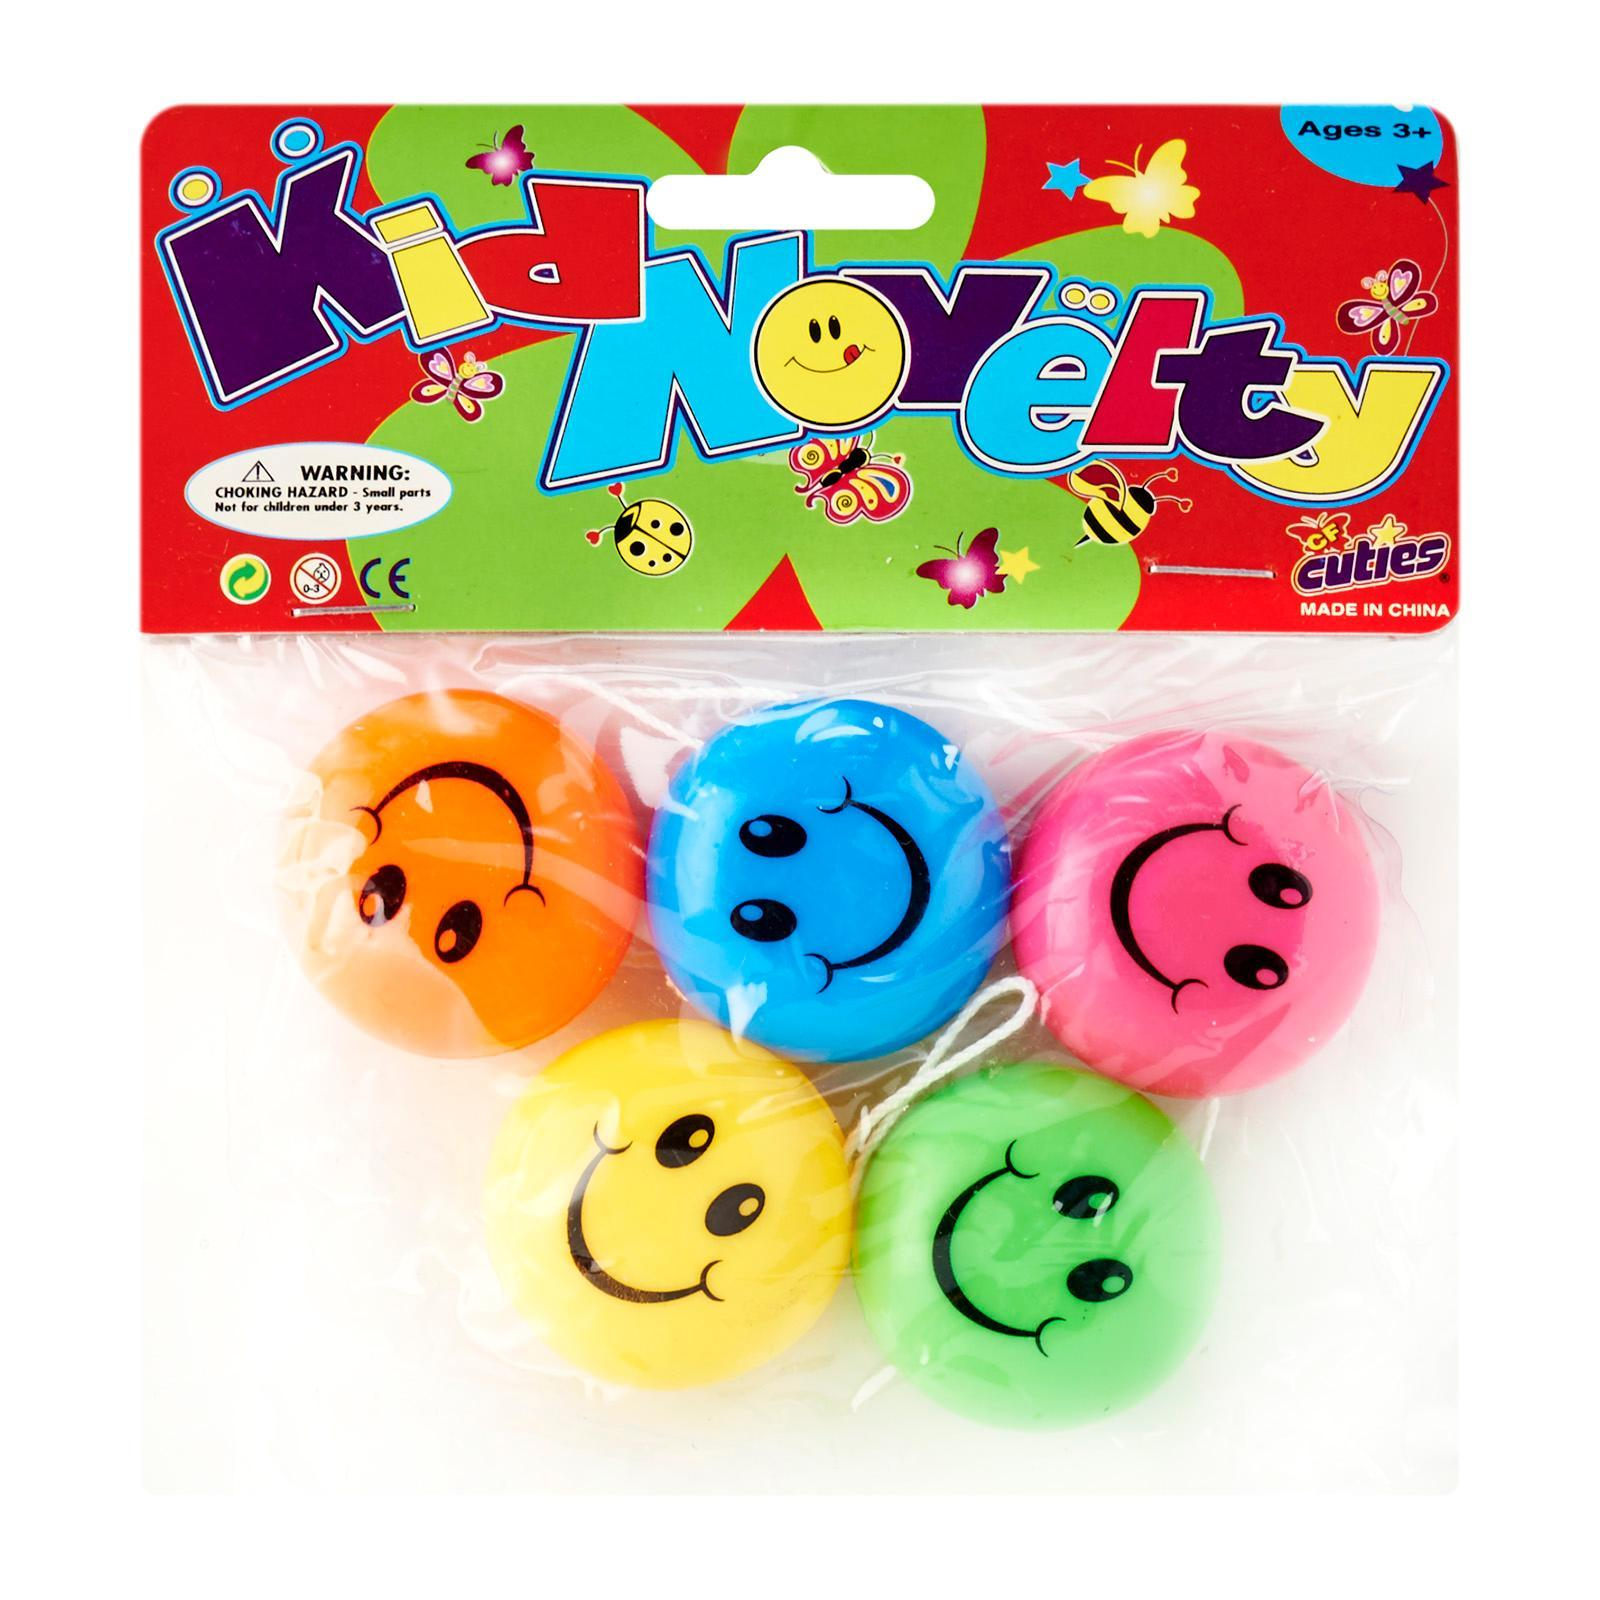 Partyforte Smile Yoyo 4S Toy Packs